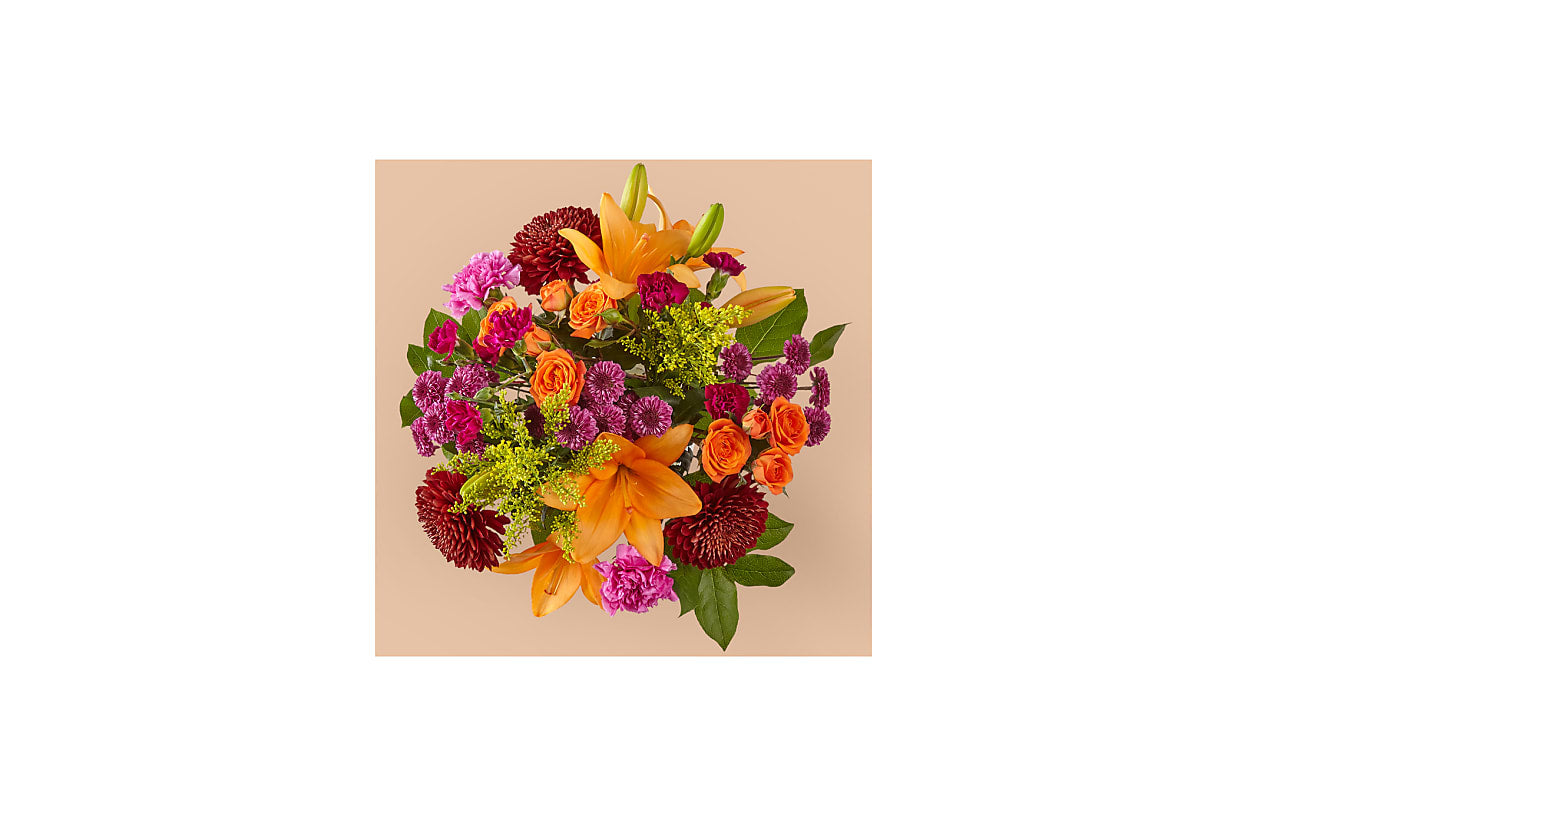 Walk in the Park Bouquet - Image 3 Of 4